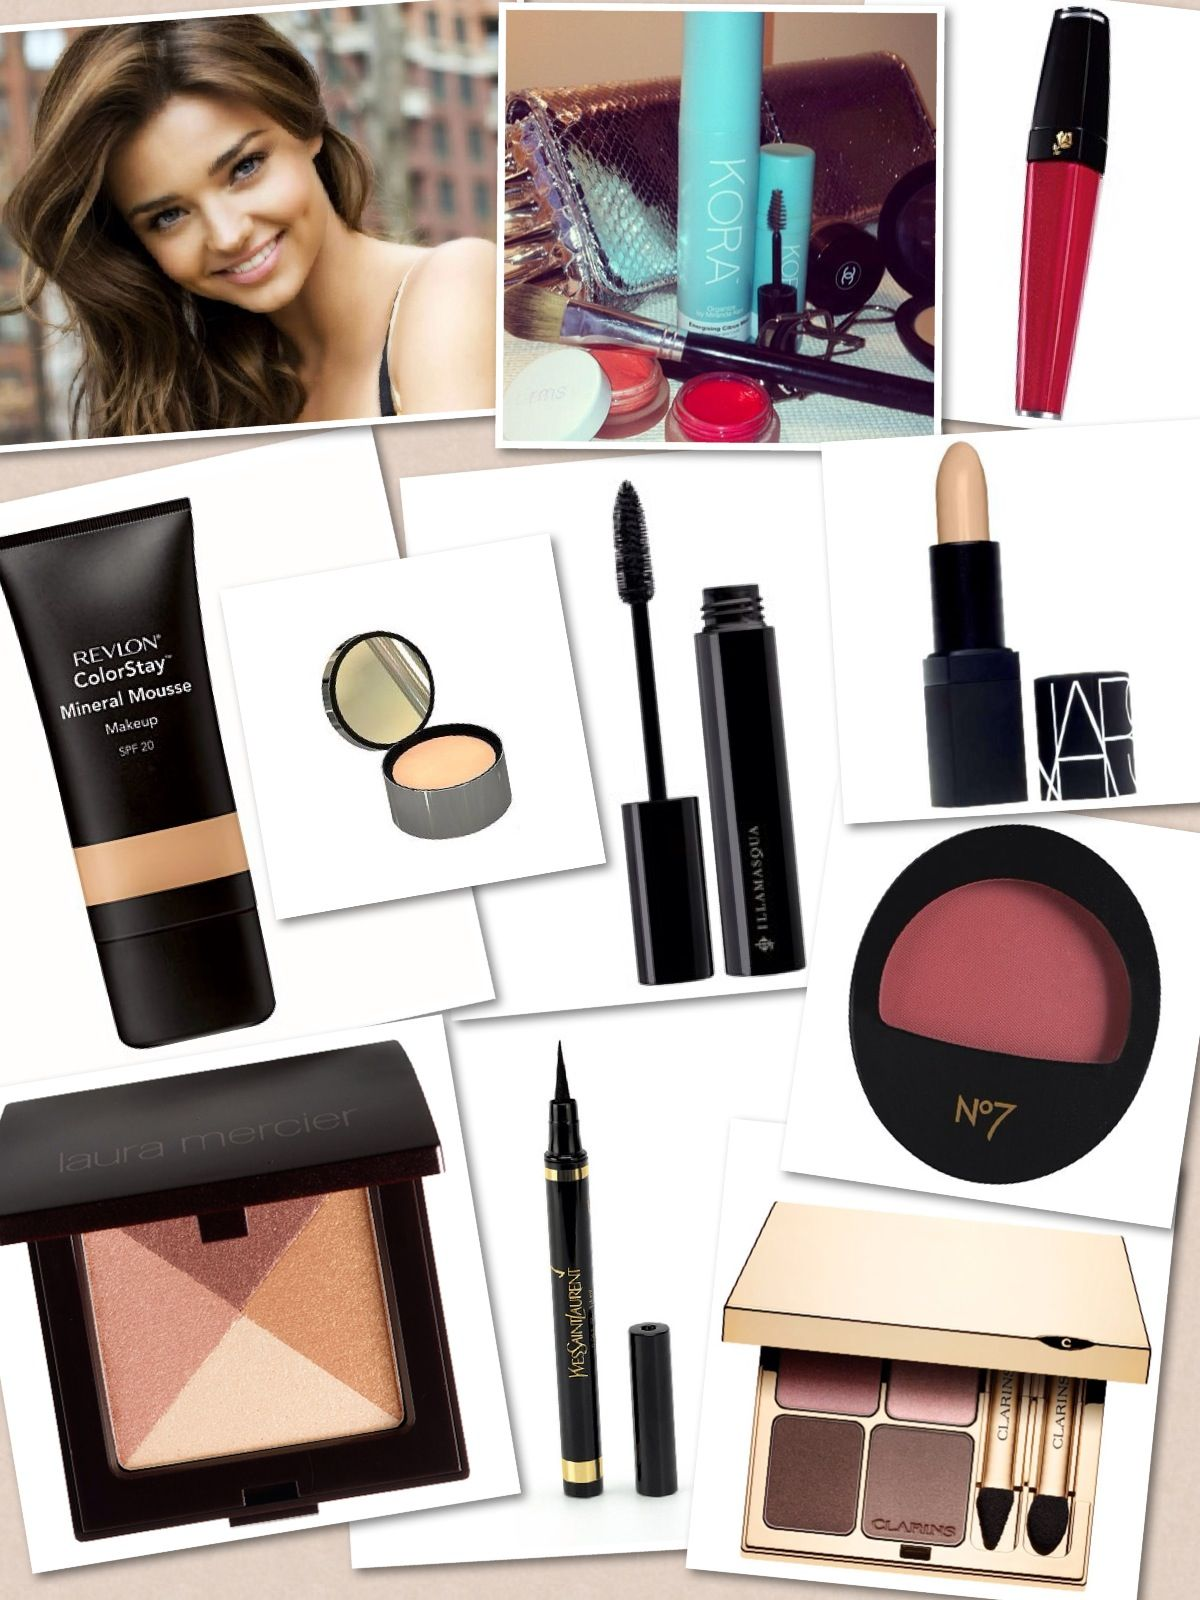 Free celebrity cosmetic samples